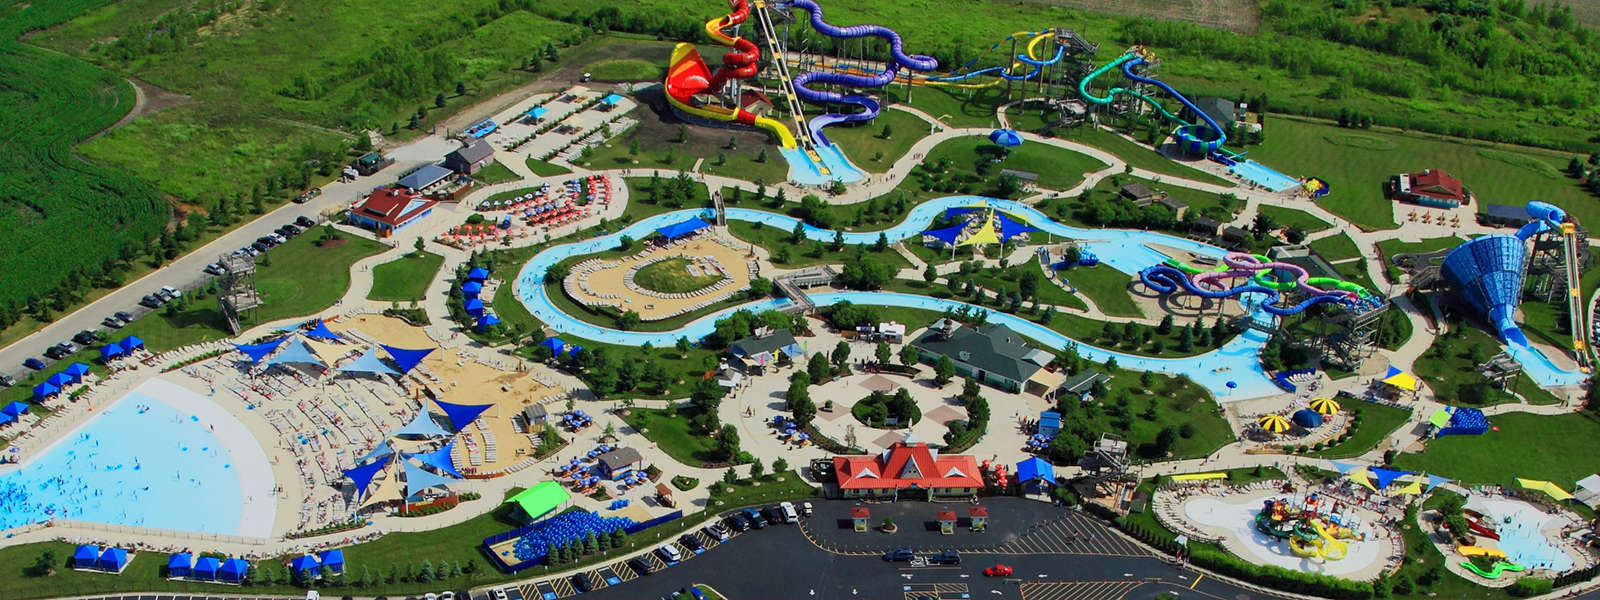 Summer Fun Includes 20 Waterslides, 1/4 Mile Lazy River, Huge Wave Pool,  Multiple Kiddie Areas, And More! Located In Yorkville, IL U2013 We Are Just A  Few ...